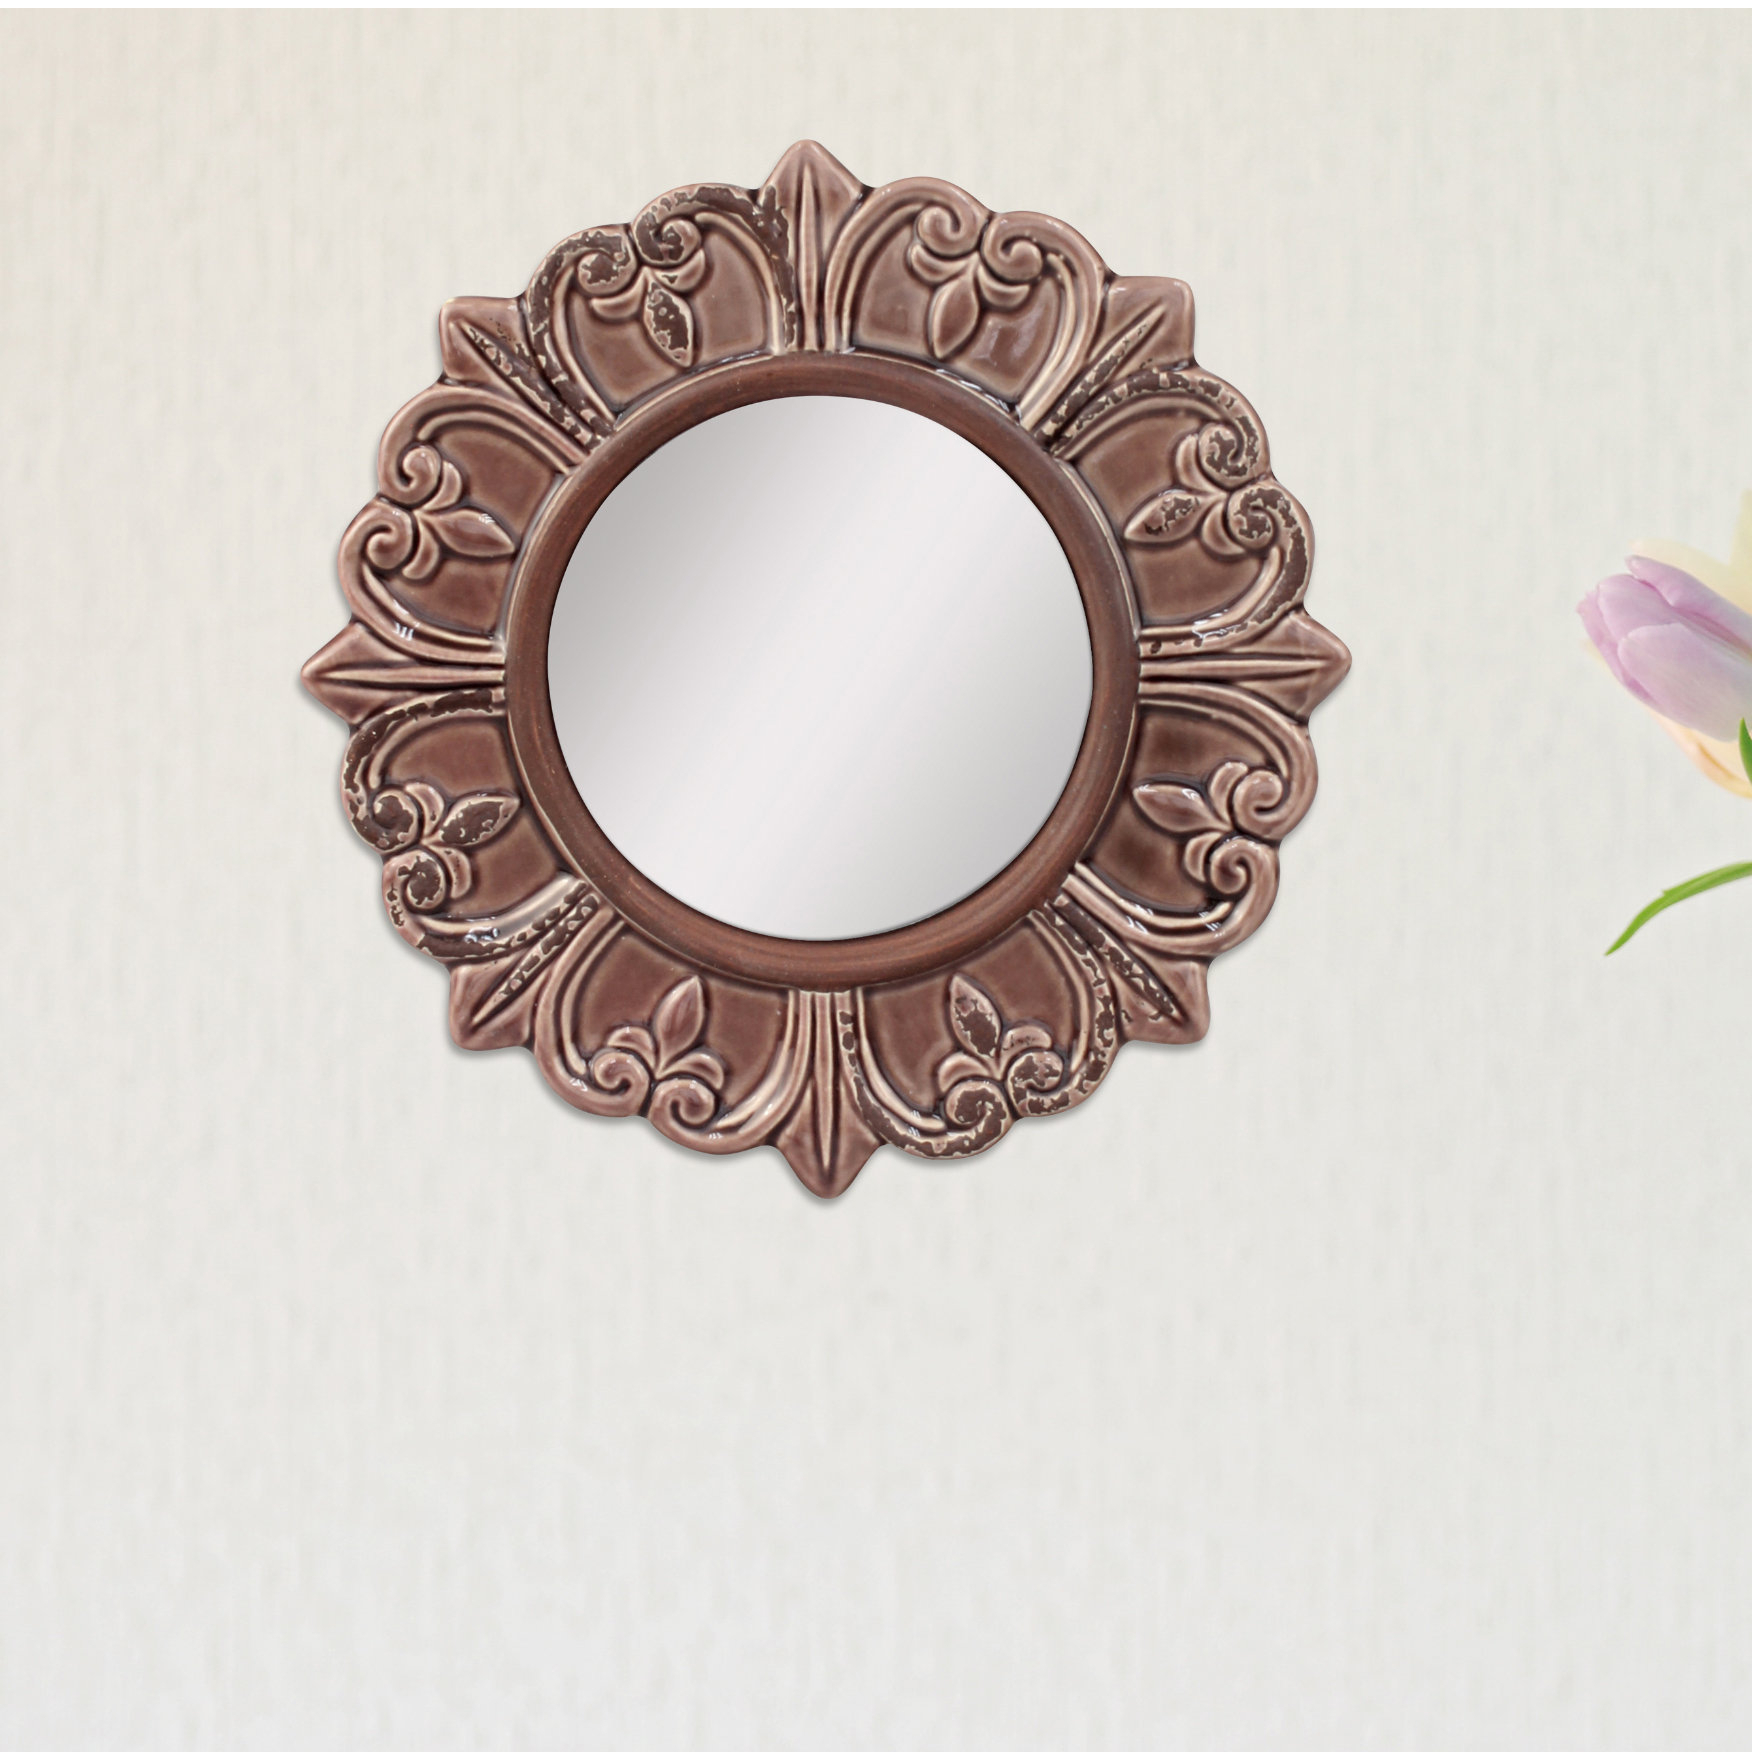 Waverly Place Round Distressed Wall Mirror Regarding Karn Vertical Round Resin Wall Mirrors (Image 19 of 20)